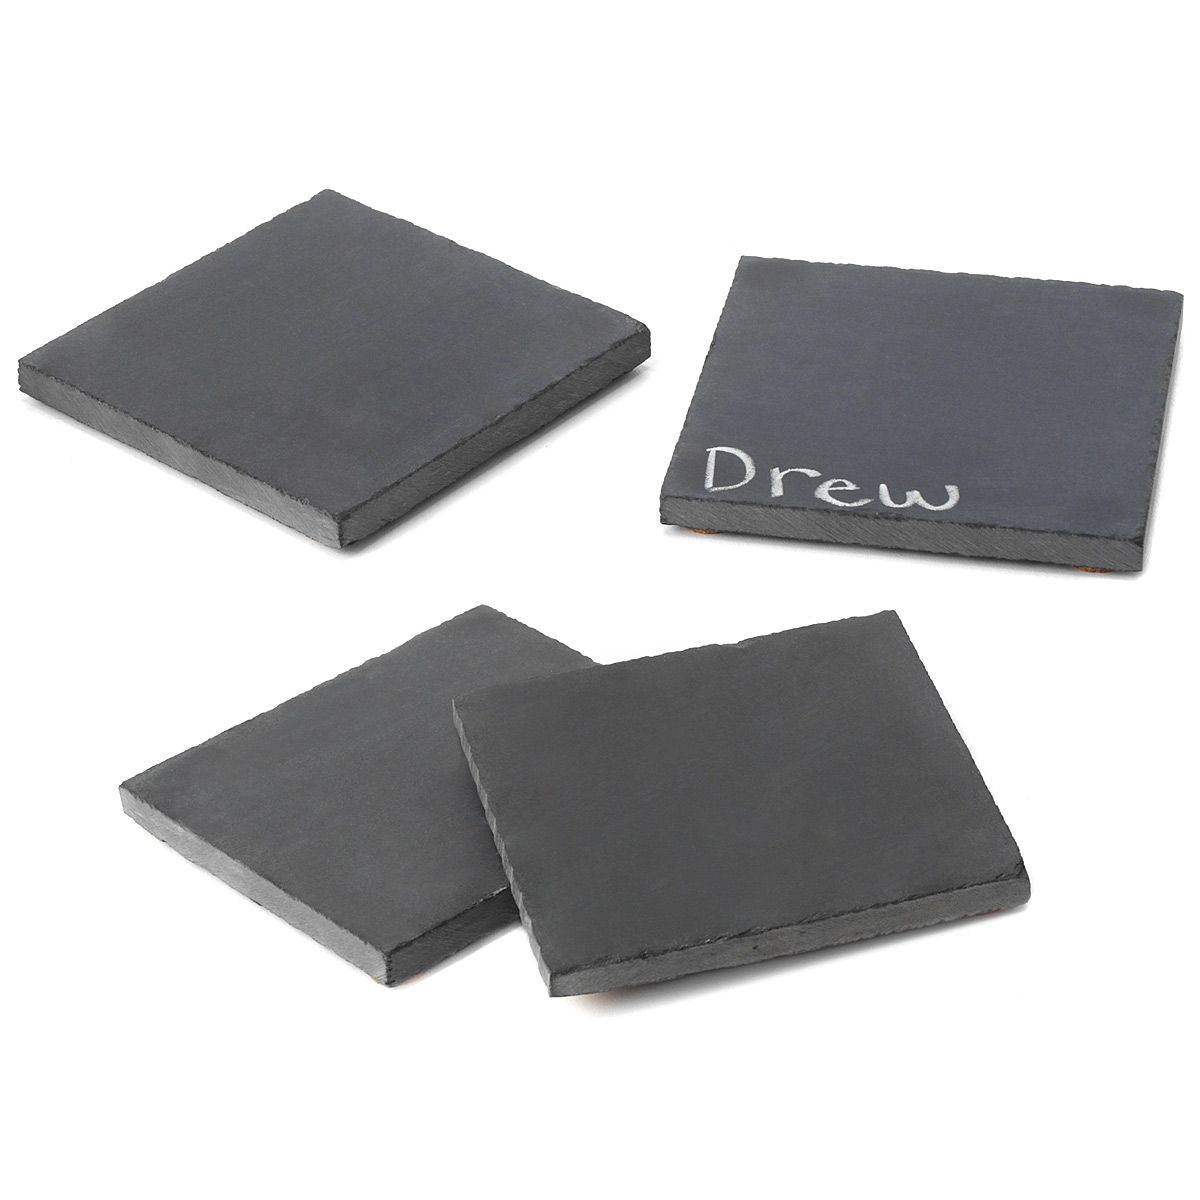 RECLAIMED SLATE COASTERS - SET OF 4 | Recycled Chalkboards, Black Coasters | UncommonGoods